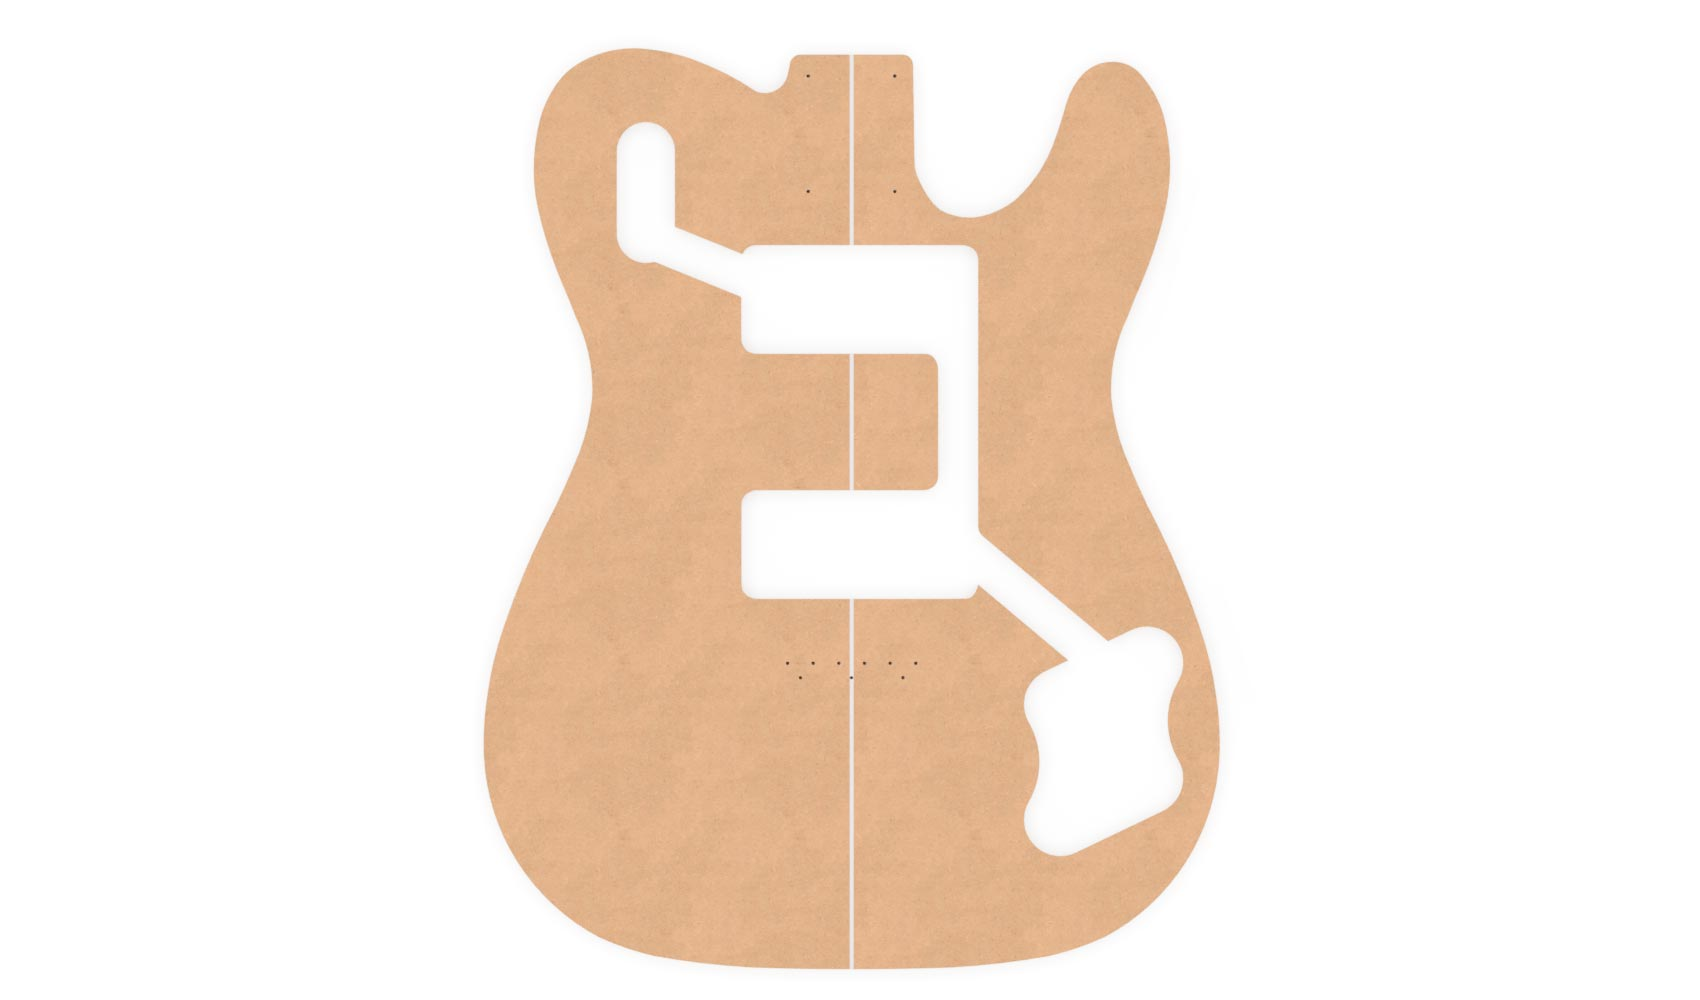 Fender Telecaster Router Templates ('72 Deluxe) | Electric